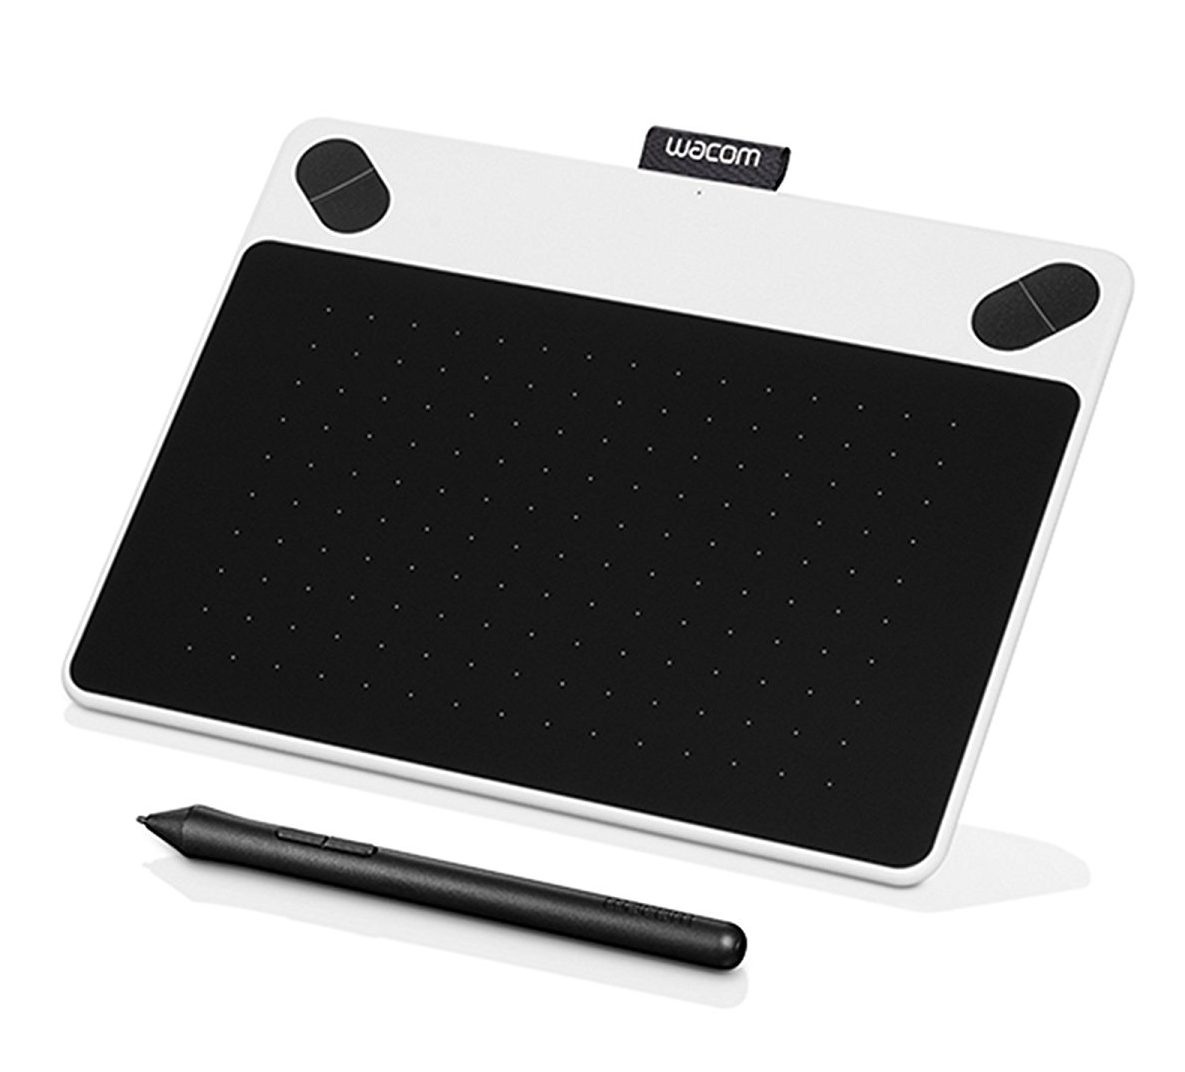 Wacom Intuos Draw CTL490DW Boxing Day & New Years deals